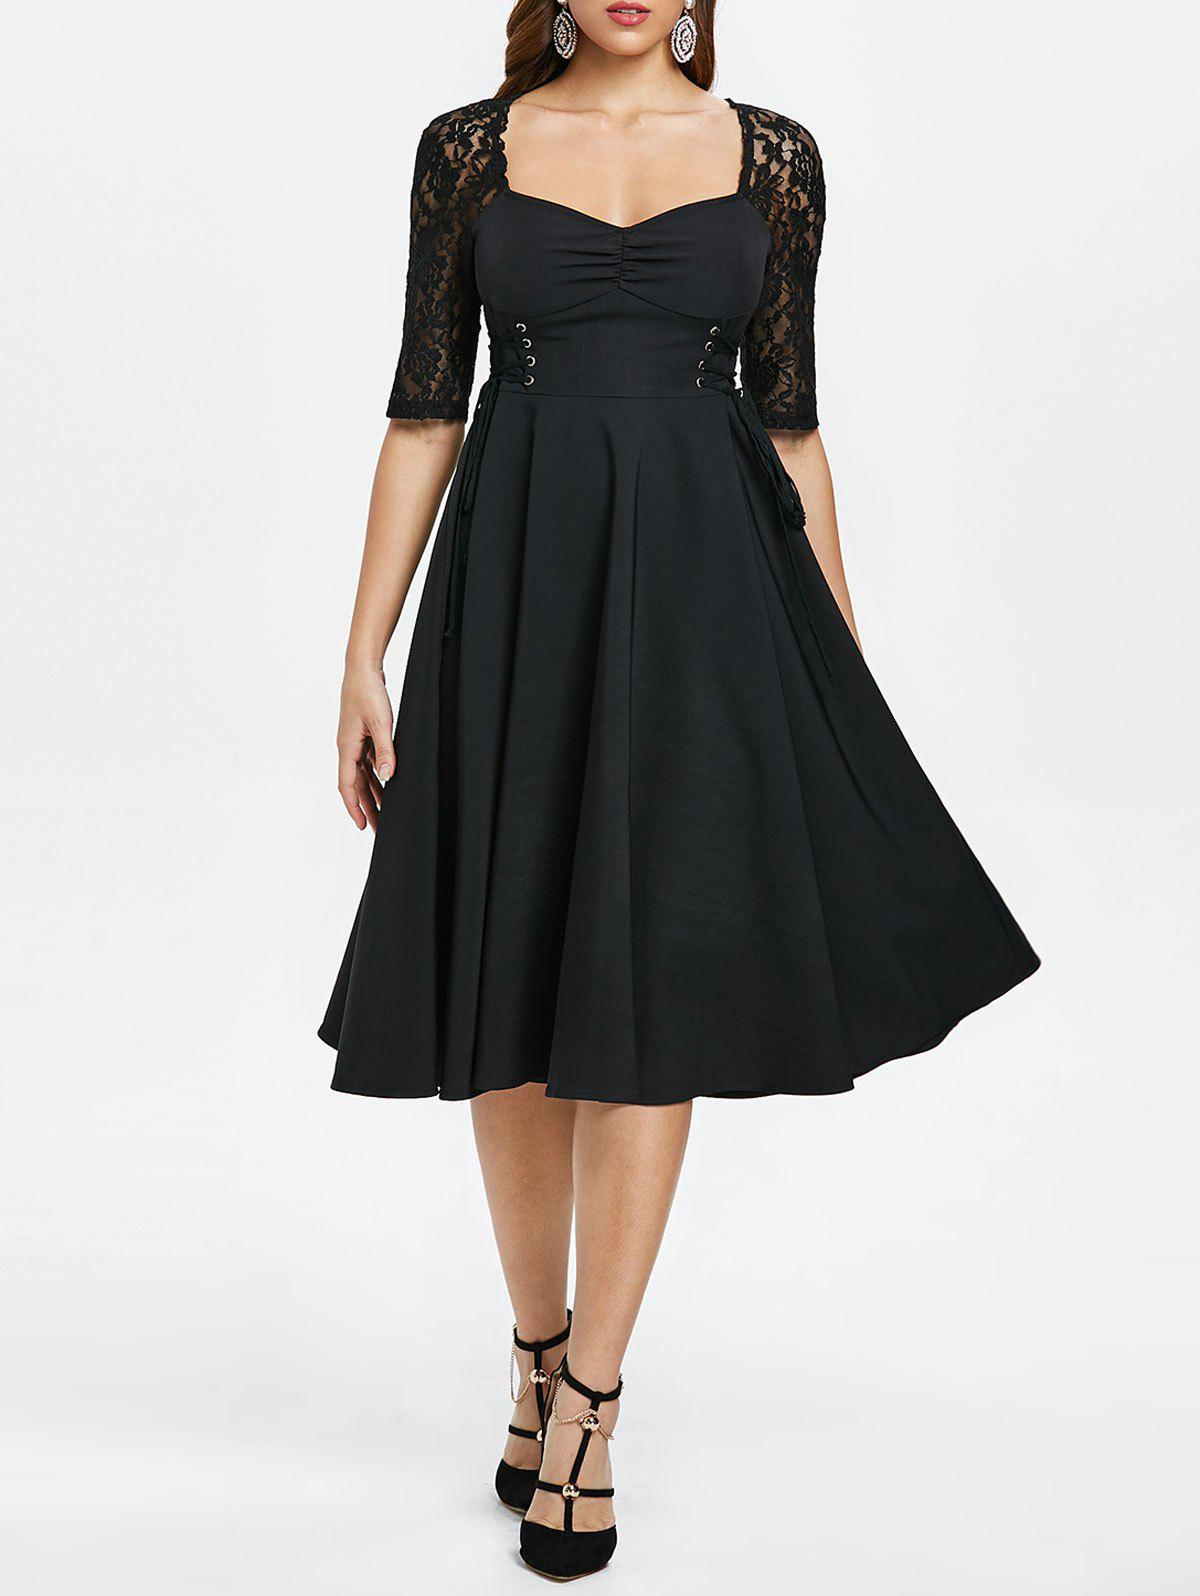 Criss Cross Lace Sleeve Retro Flare Dress - BLACK XL